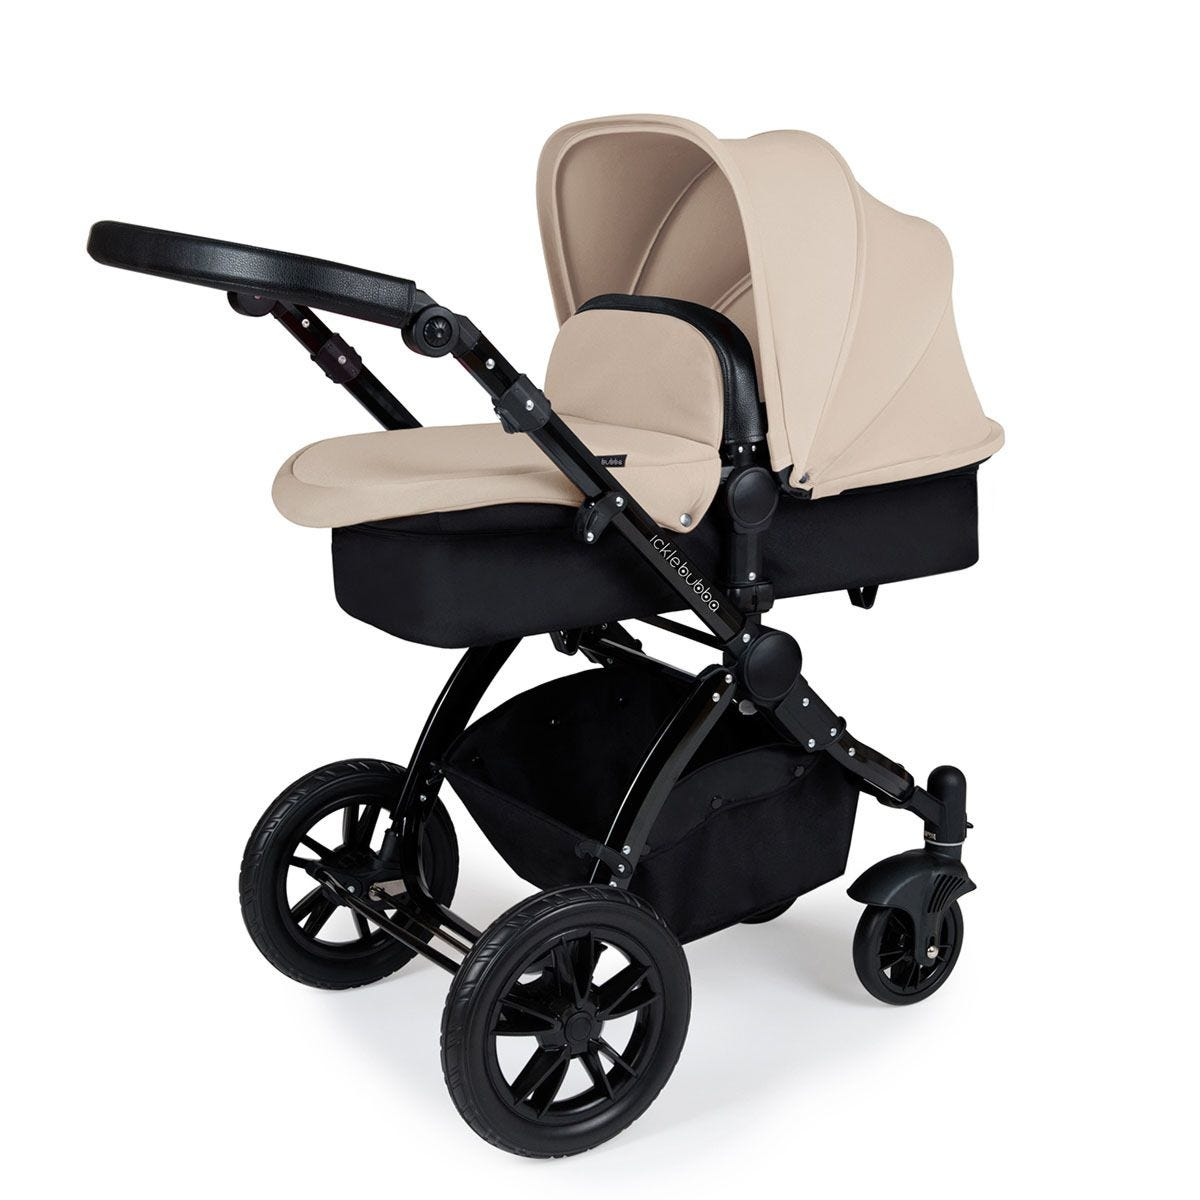 Ickle Bubba Stomp V3 2 in 1 Pushchair - Sand on Black with Black Handles